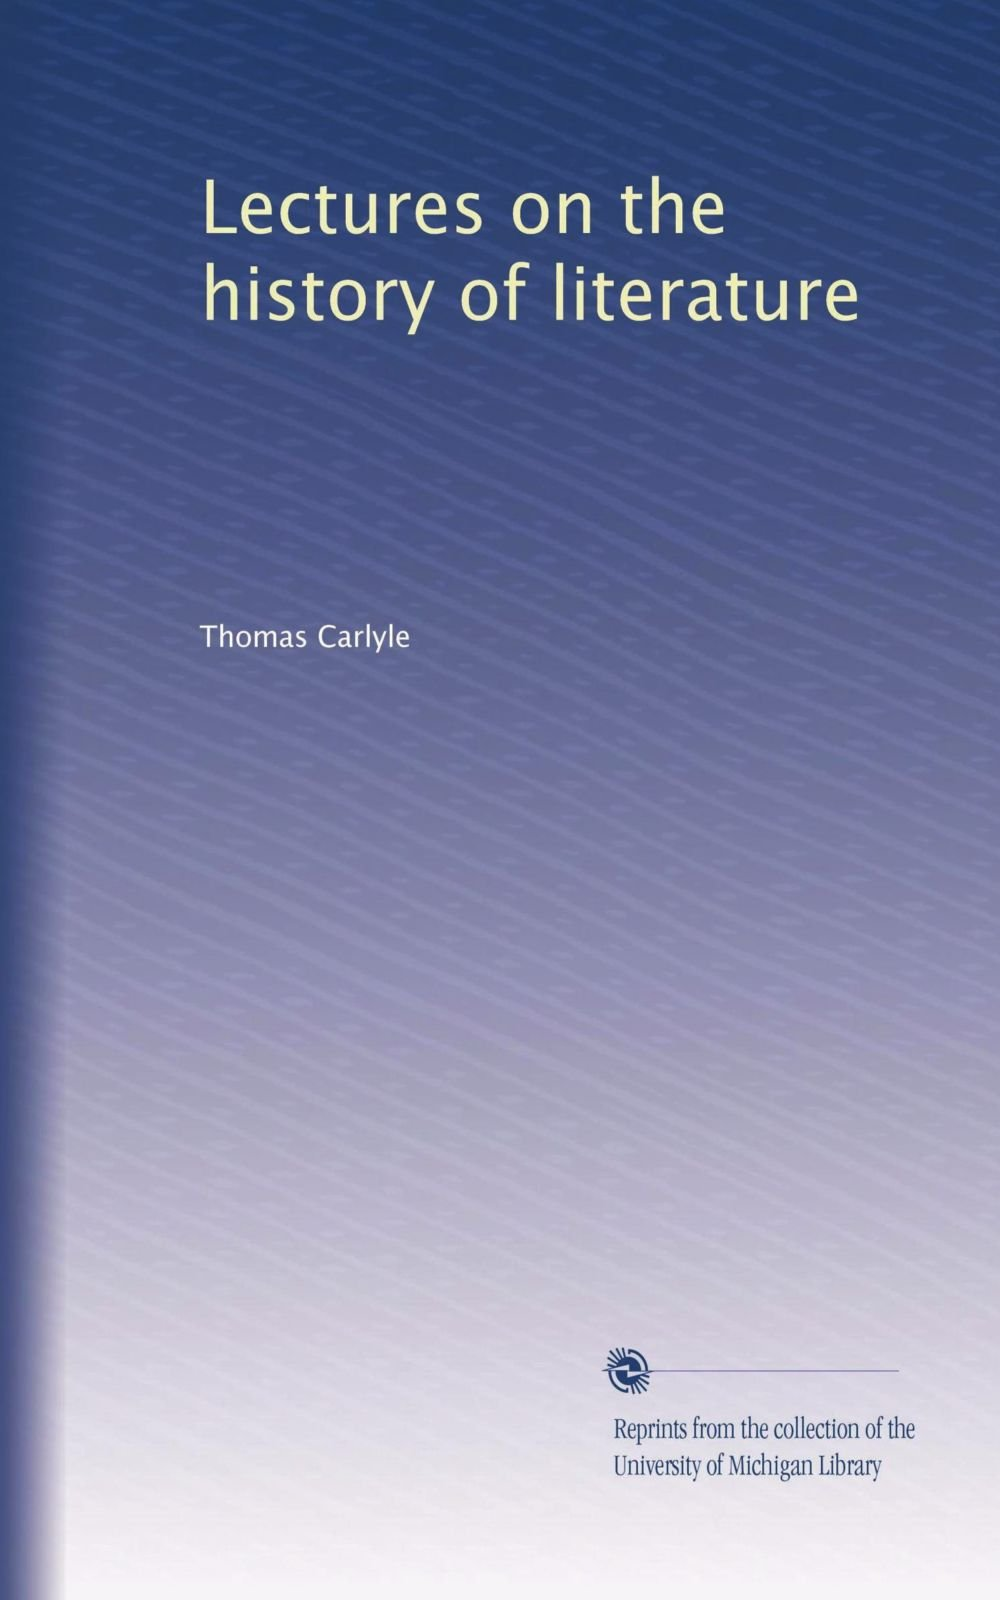 Download Lectures on the history of literature ebook